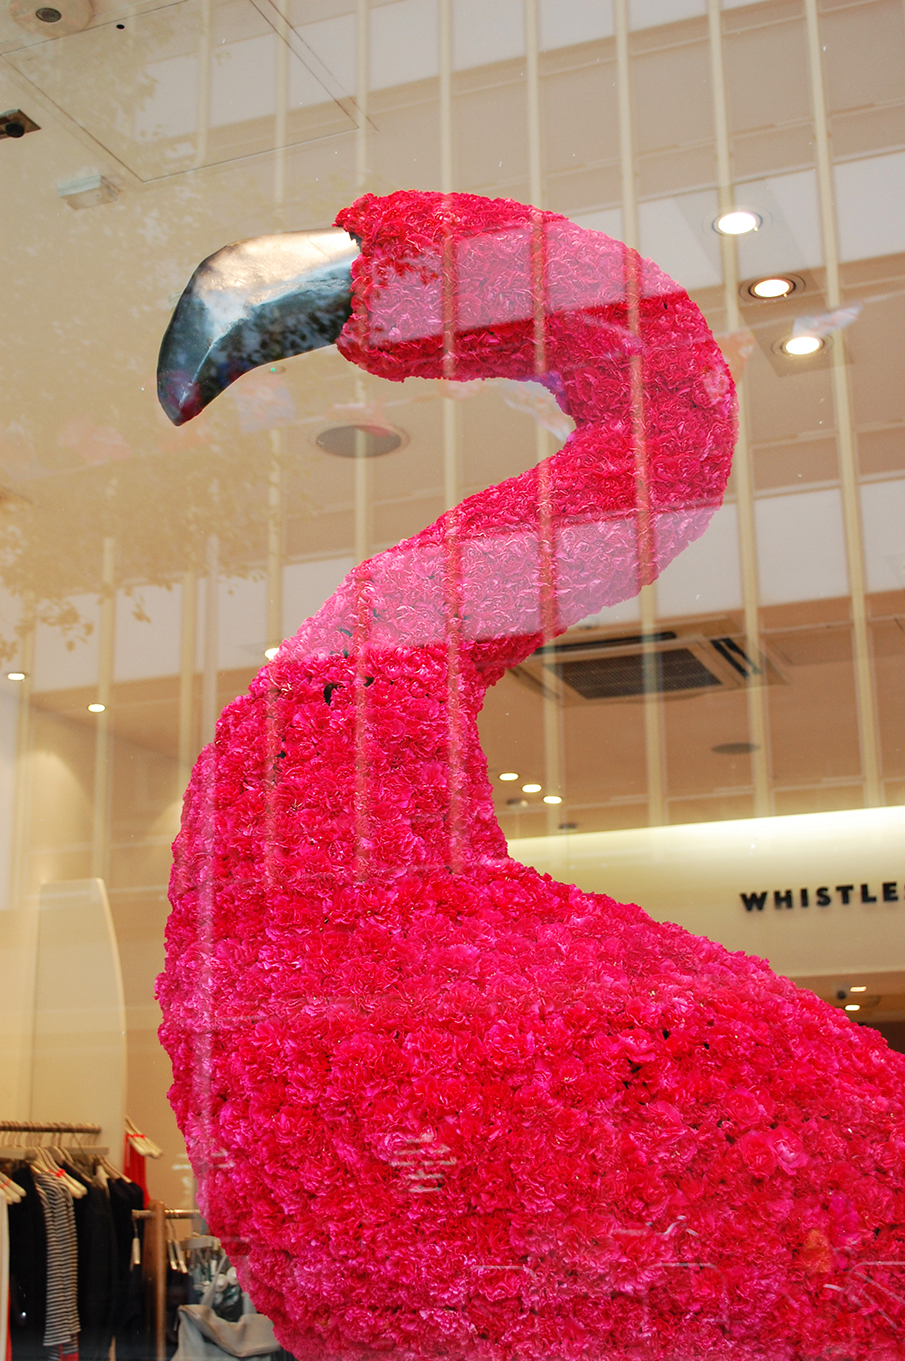 Whistles pink carnation flamingo spring window display